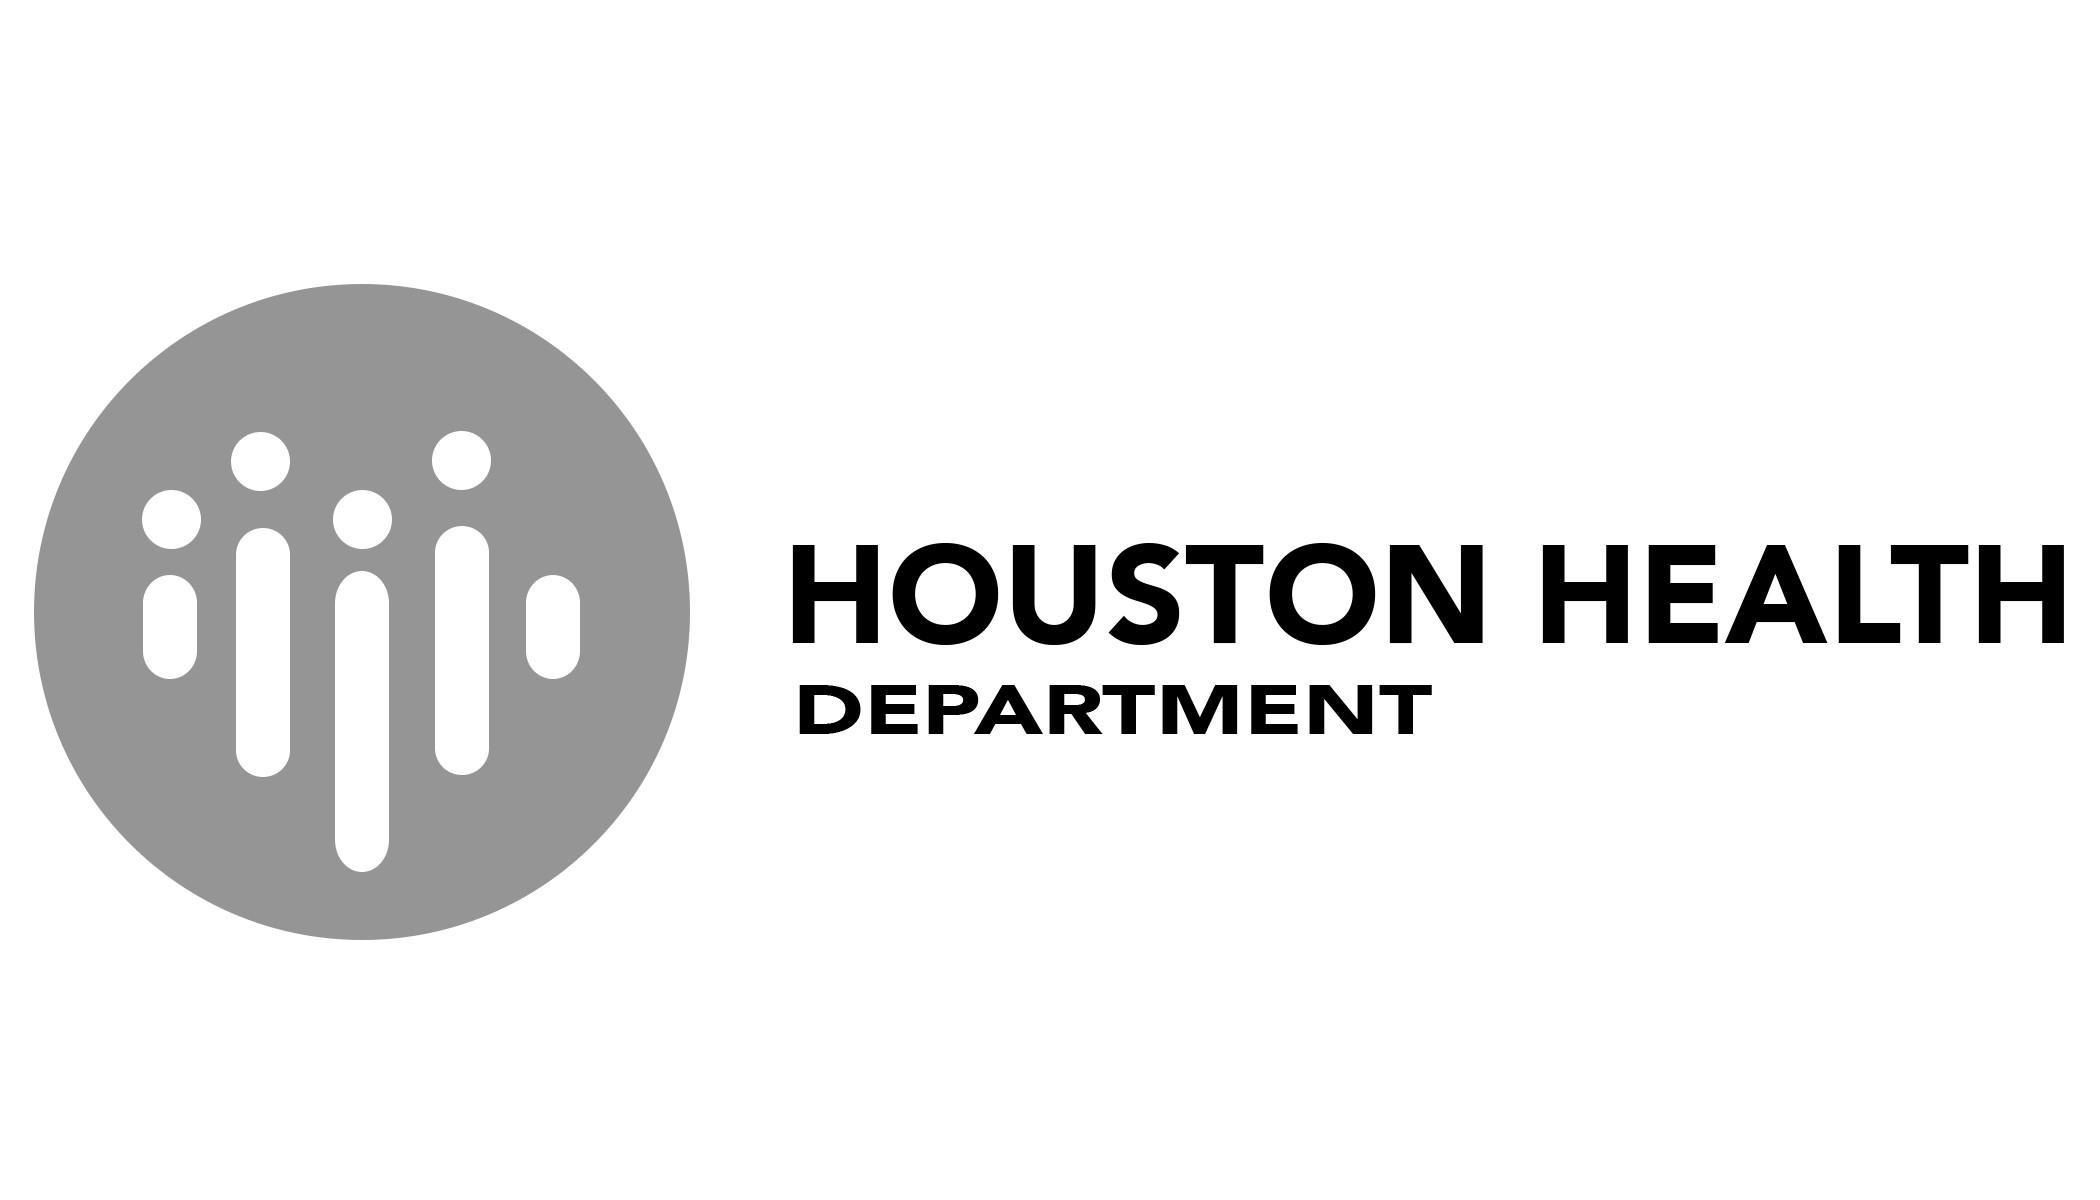 Houston Health Department Logo